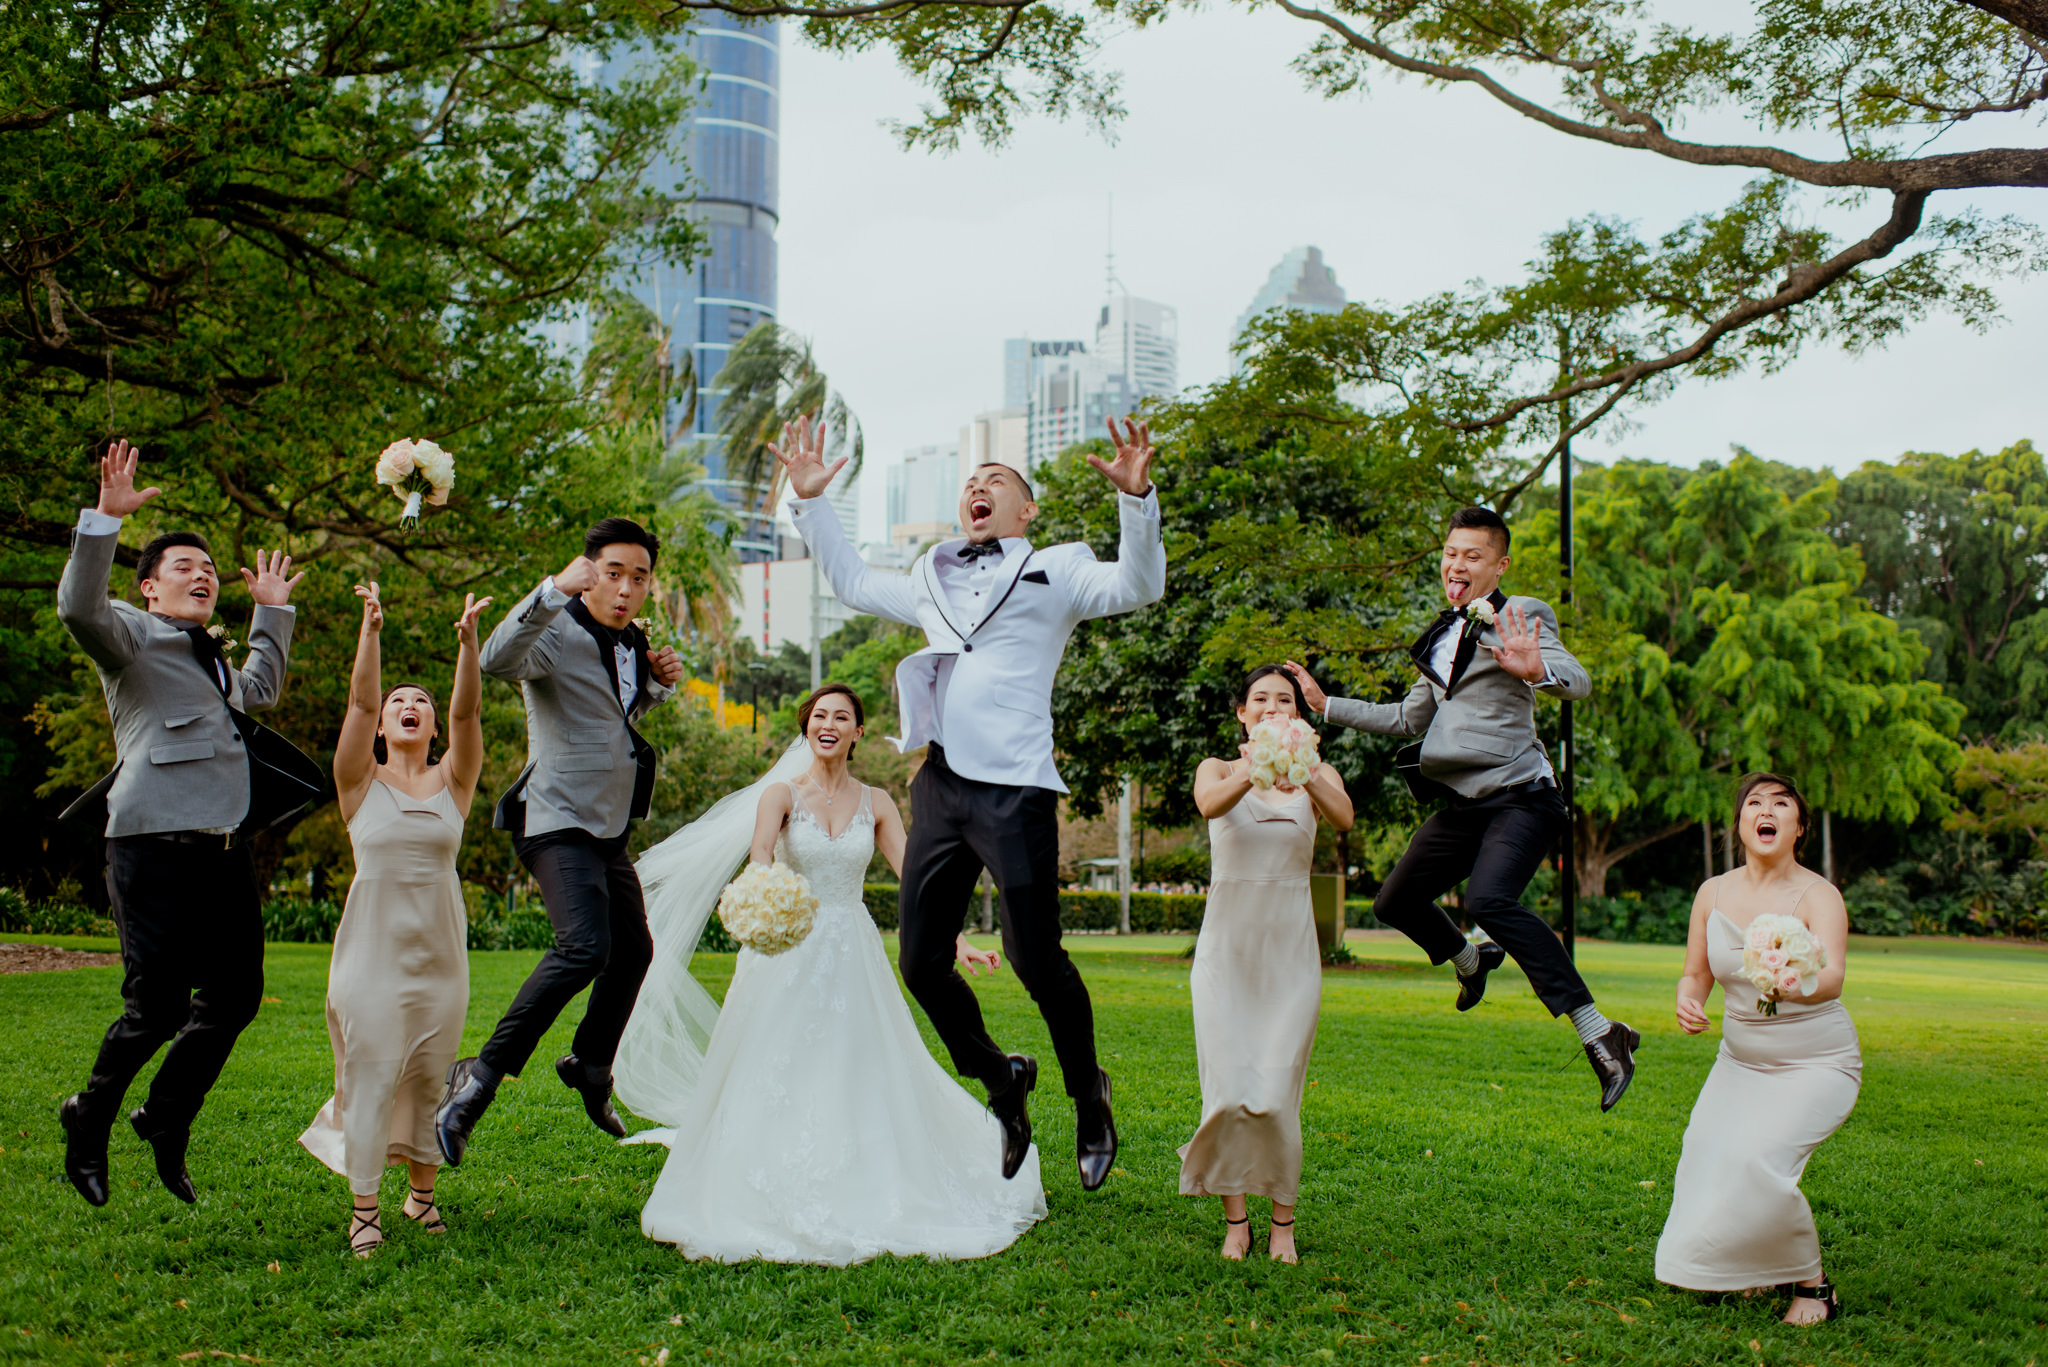 A wedding party jump and throw their bouquets in the air in a luscious green garden